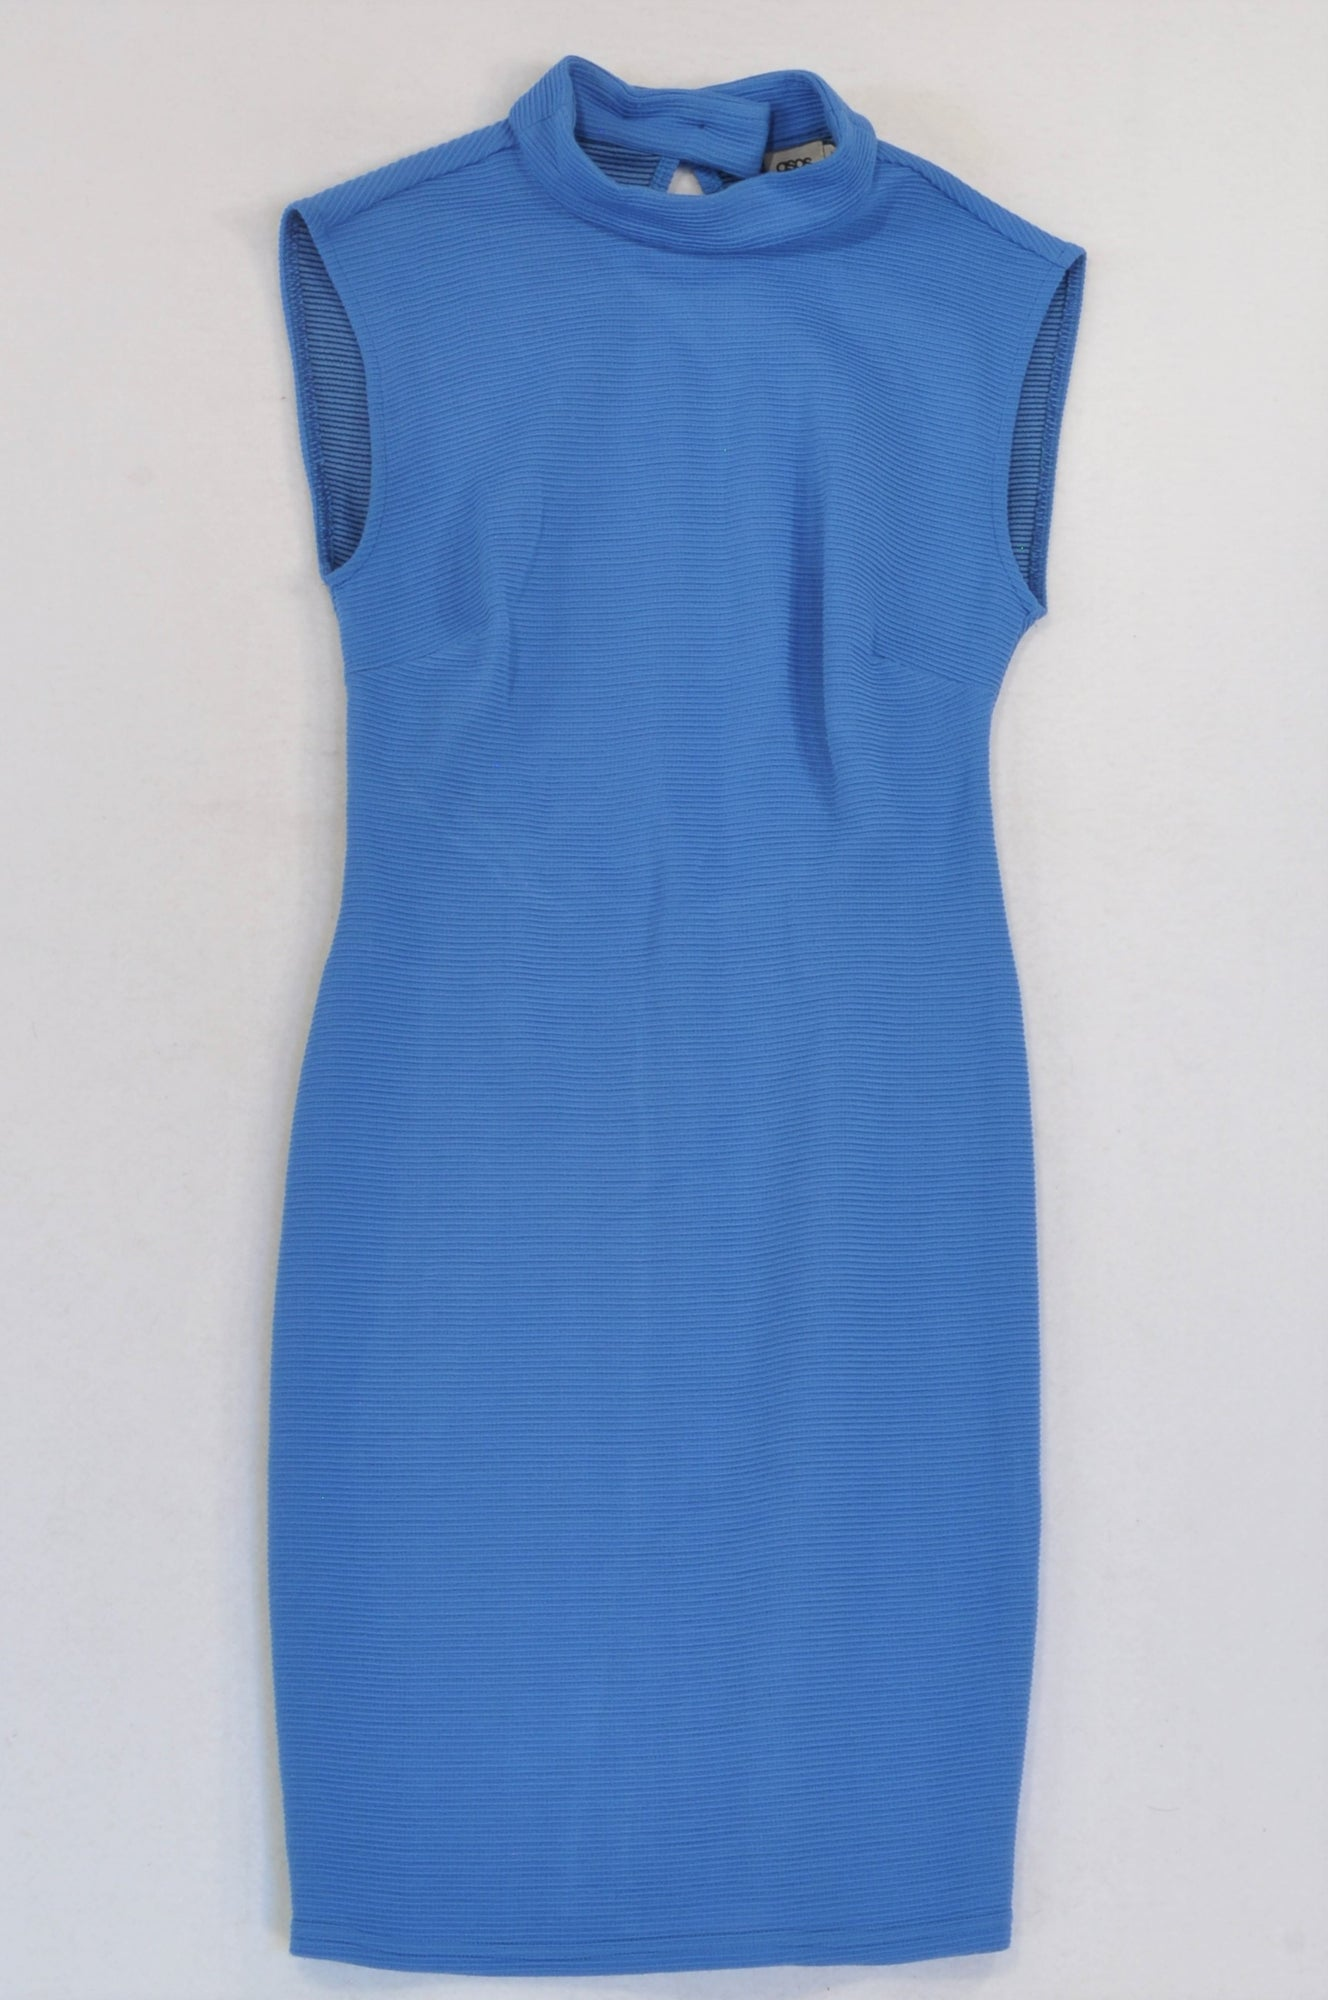 Asos Blue Ribbed High Neck Slim Fit Dress Women Size 6